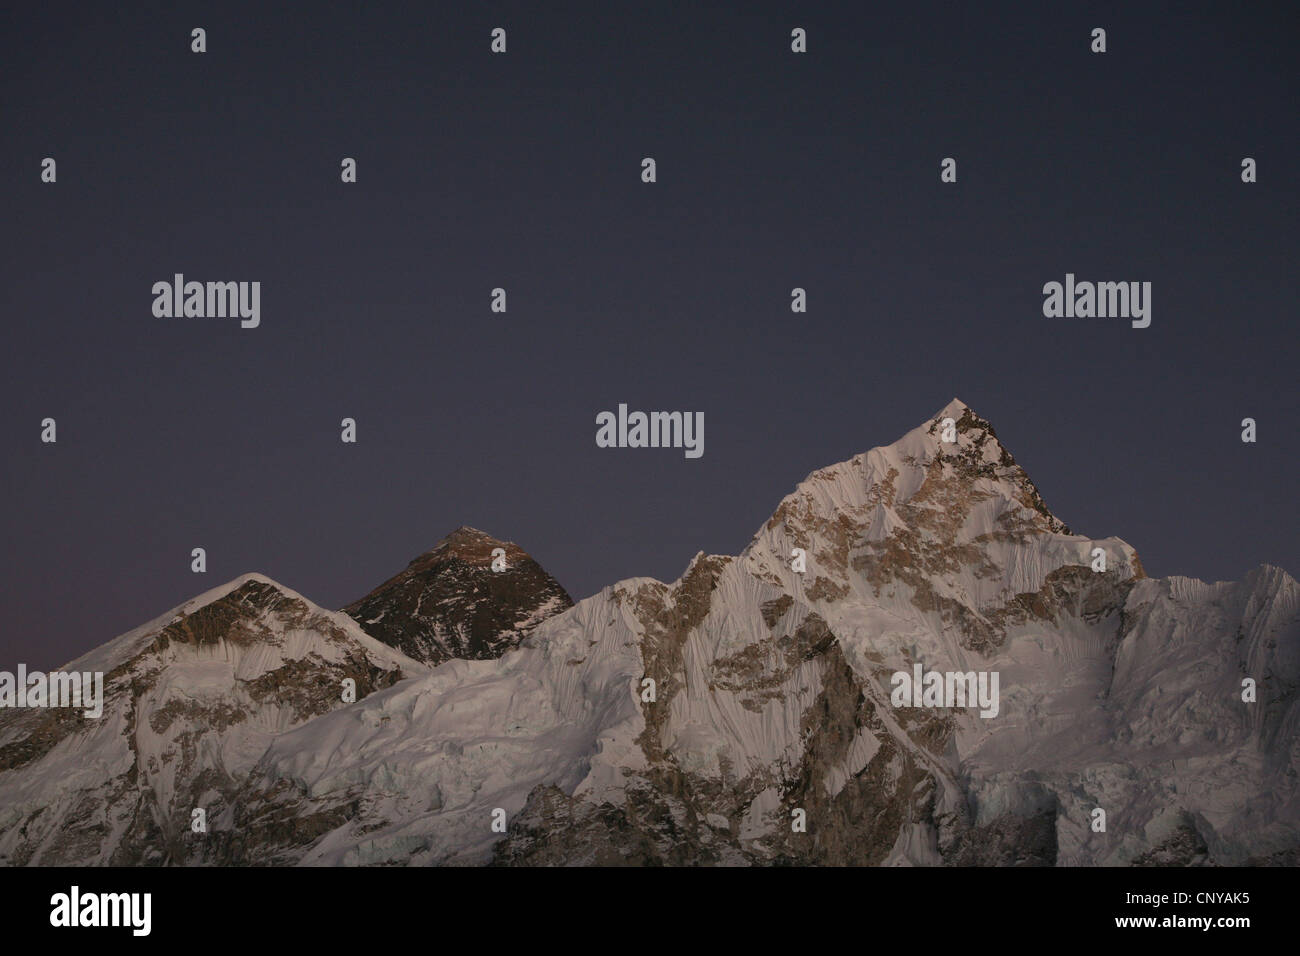 Sunset over Mount Everest (8,848 m) in Khumbu region in the Himalayas, Nepal. - Stock Image